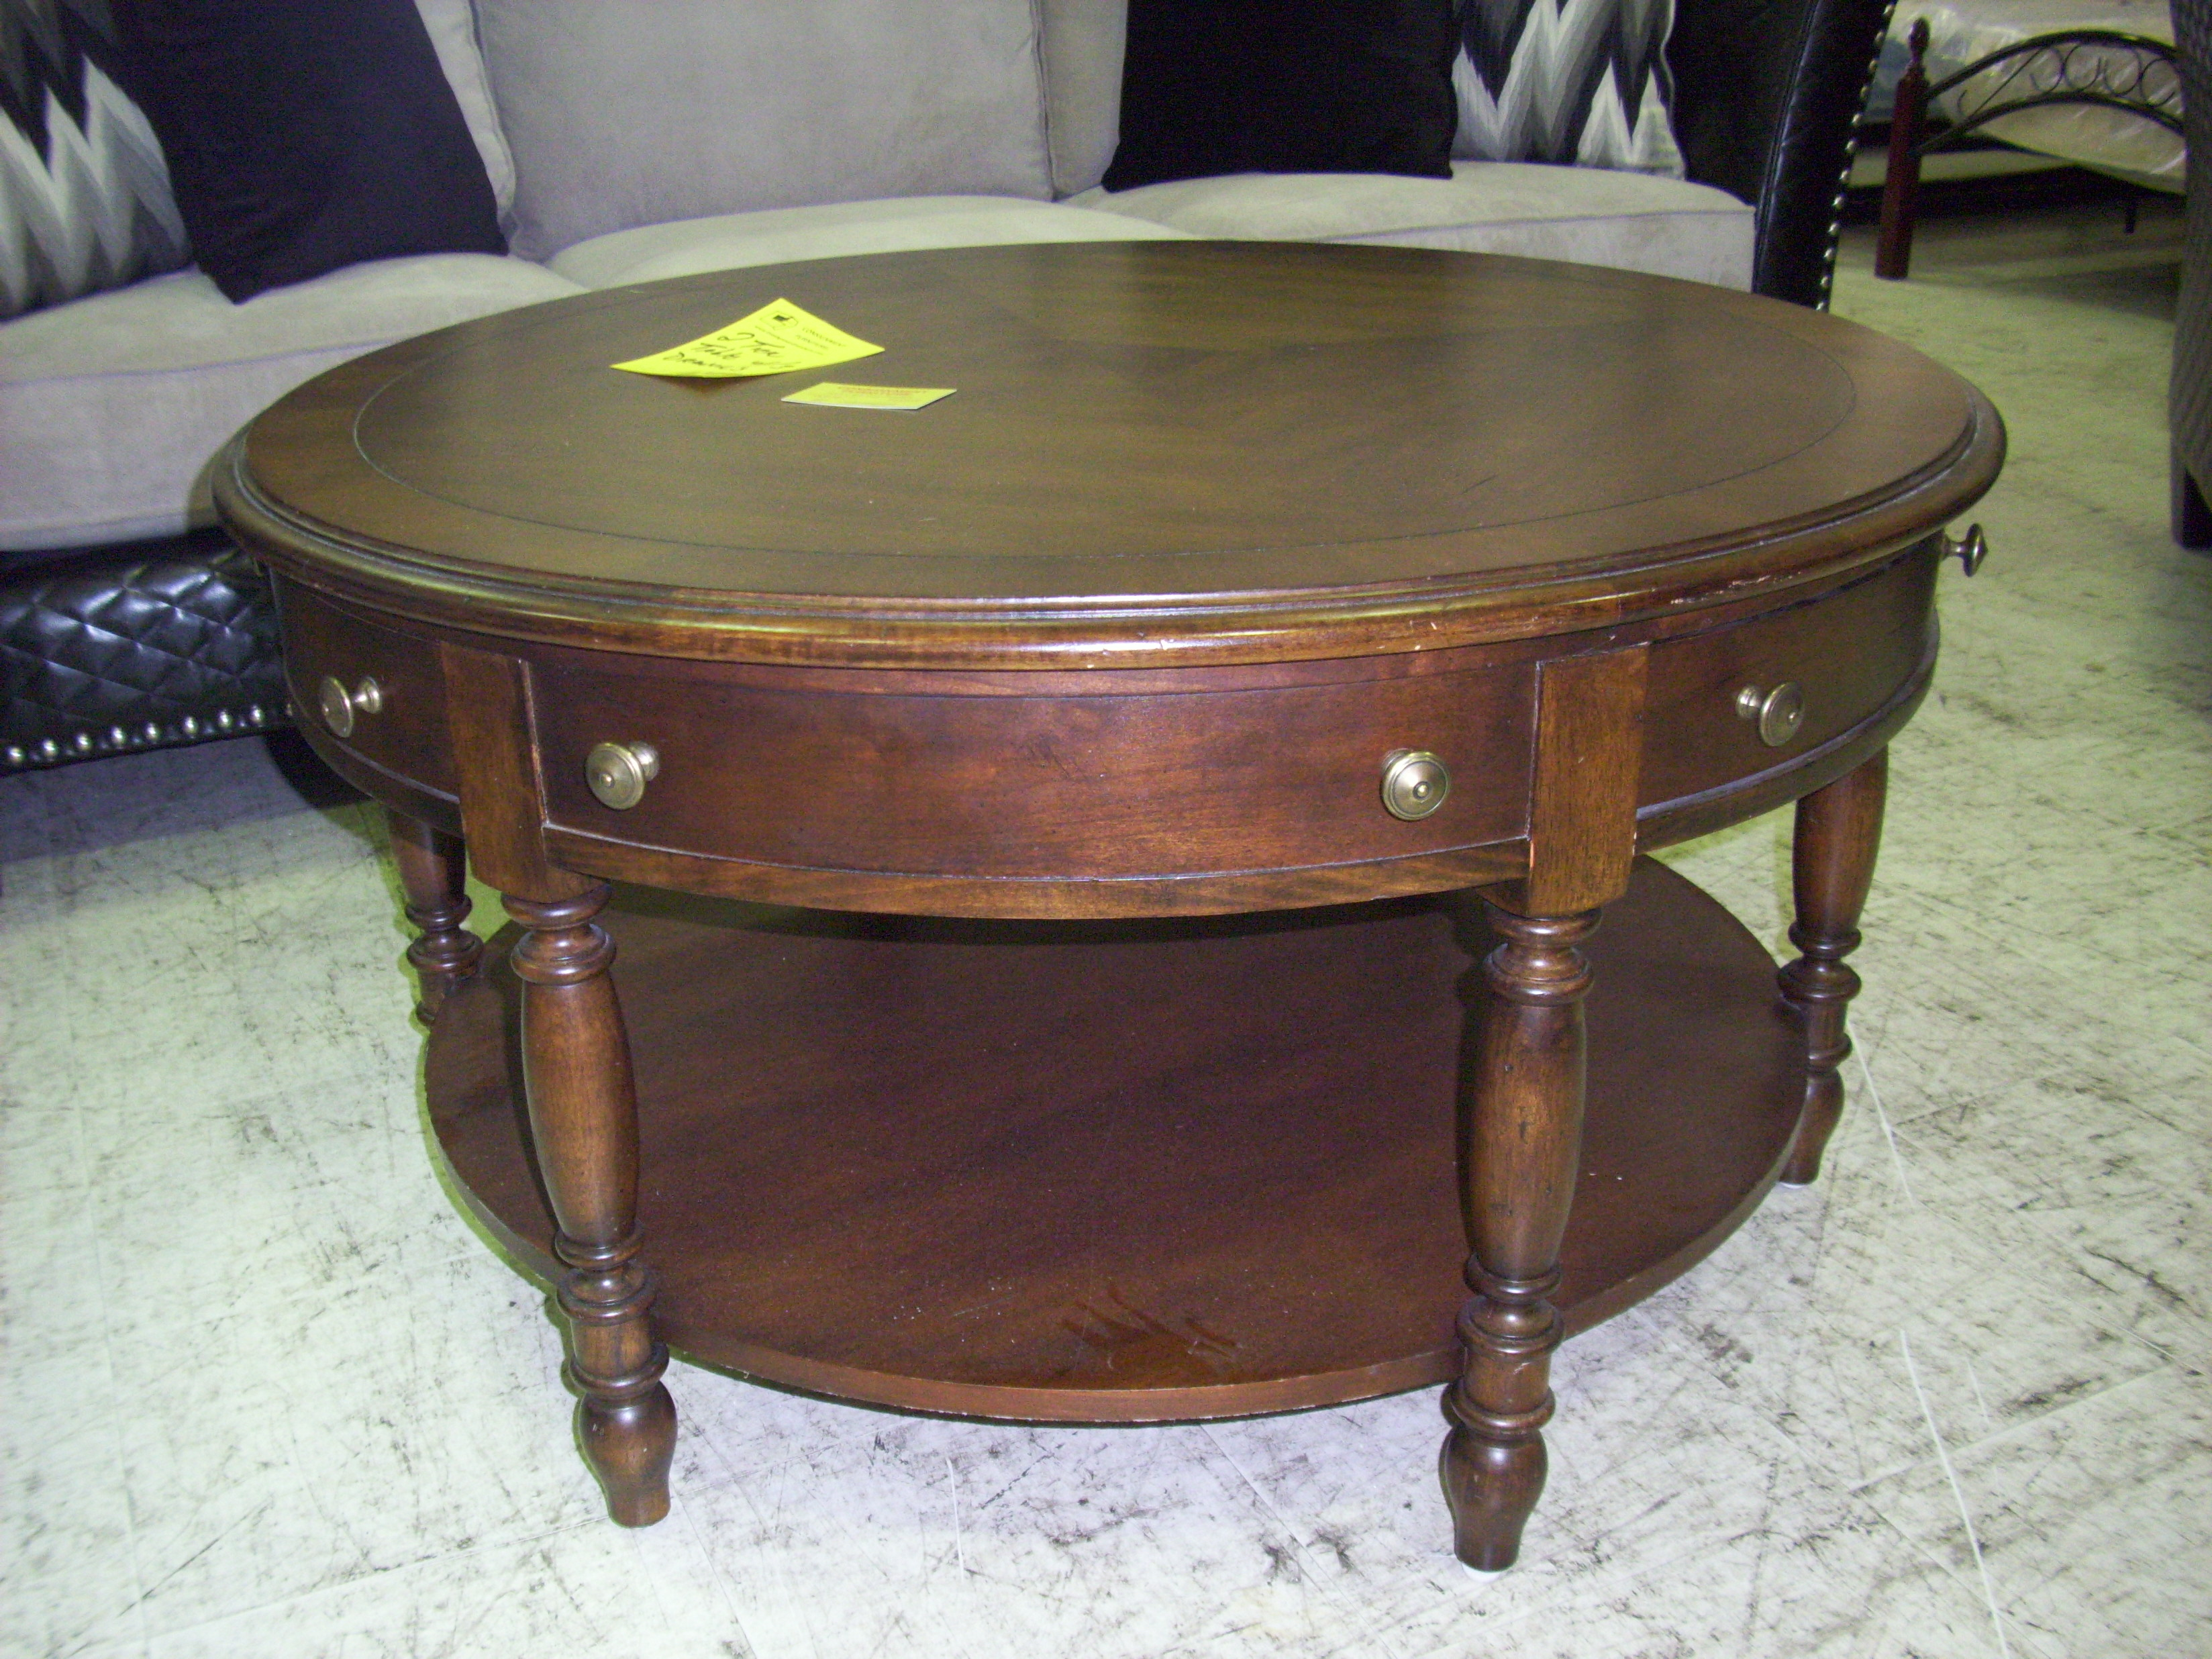 Round Wooden Coffee Table With Drawers Round Coffee Table With Two Tiers And Three Drawers One Of A Kind Unique Decoration Round Two Tier Table (Image 8 of 10)